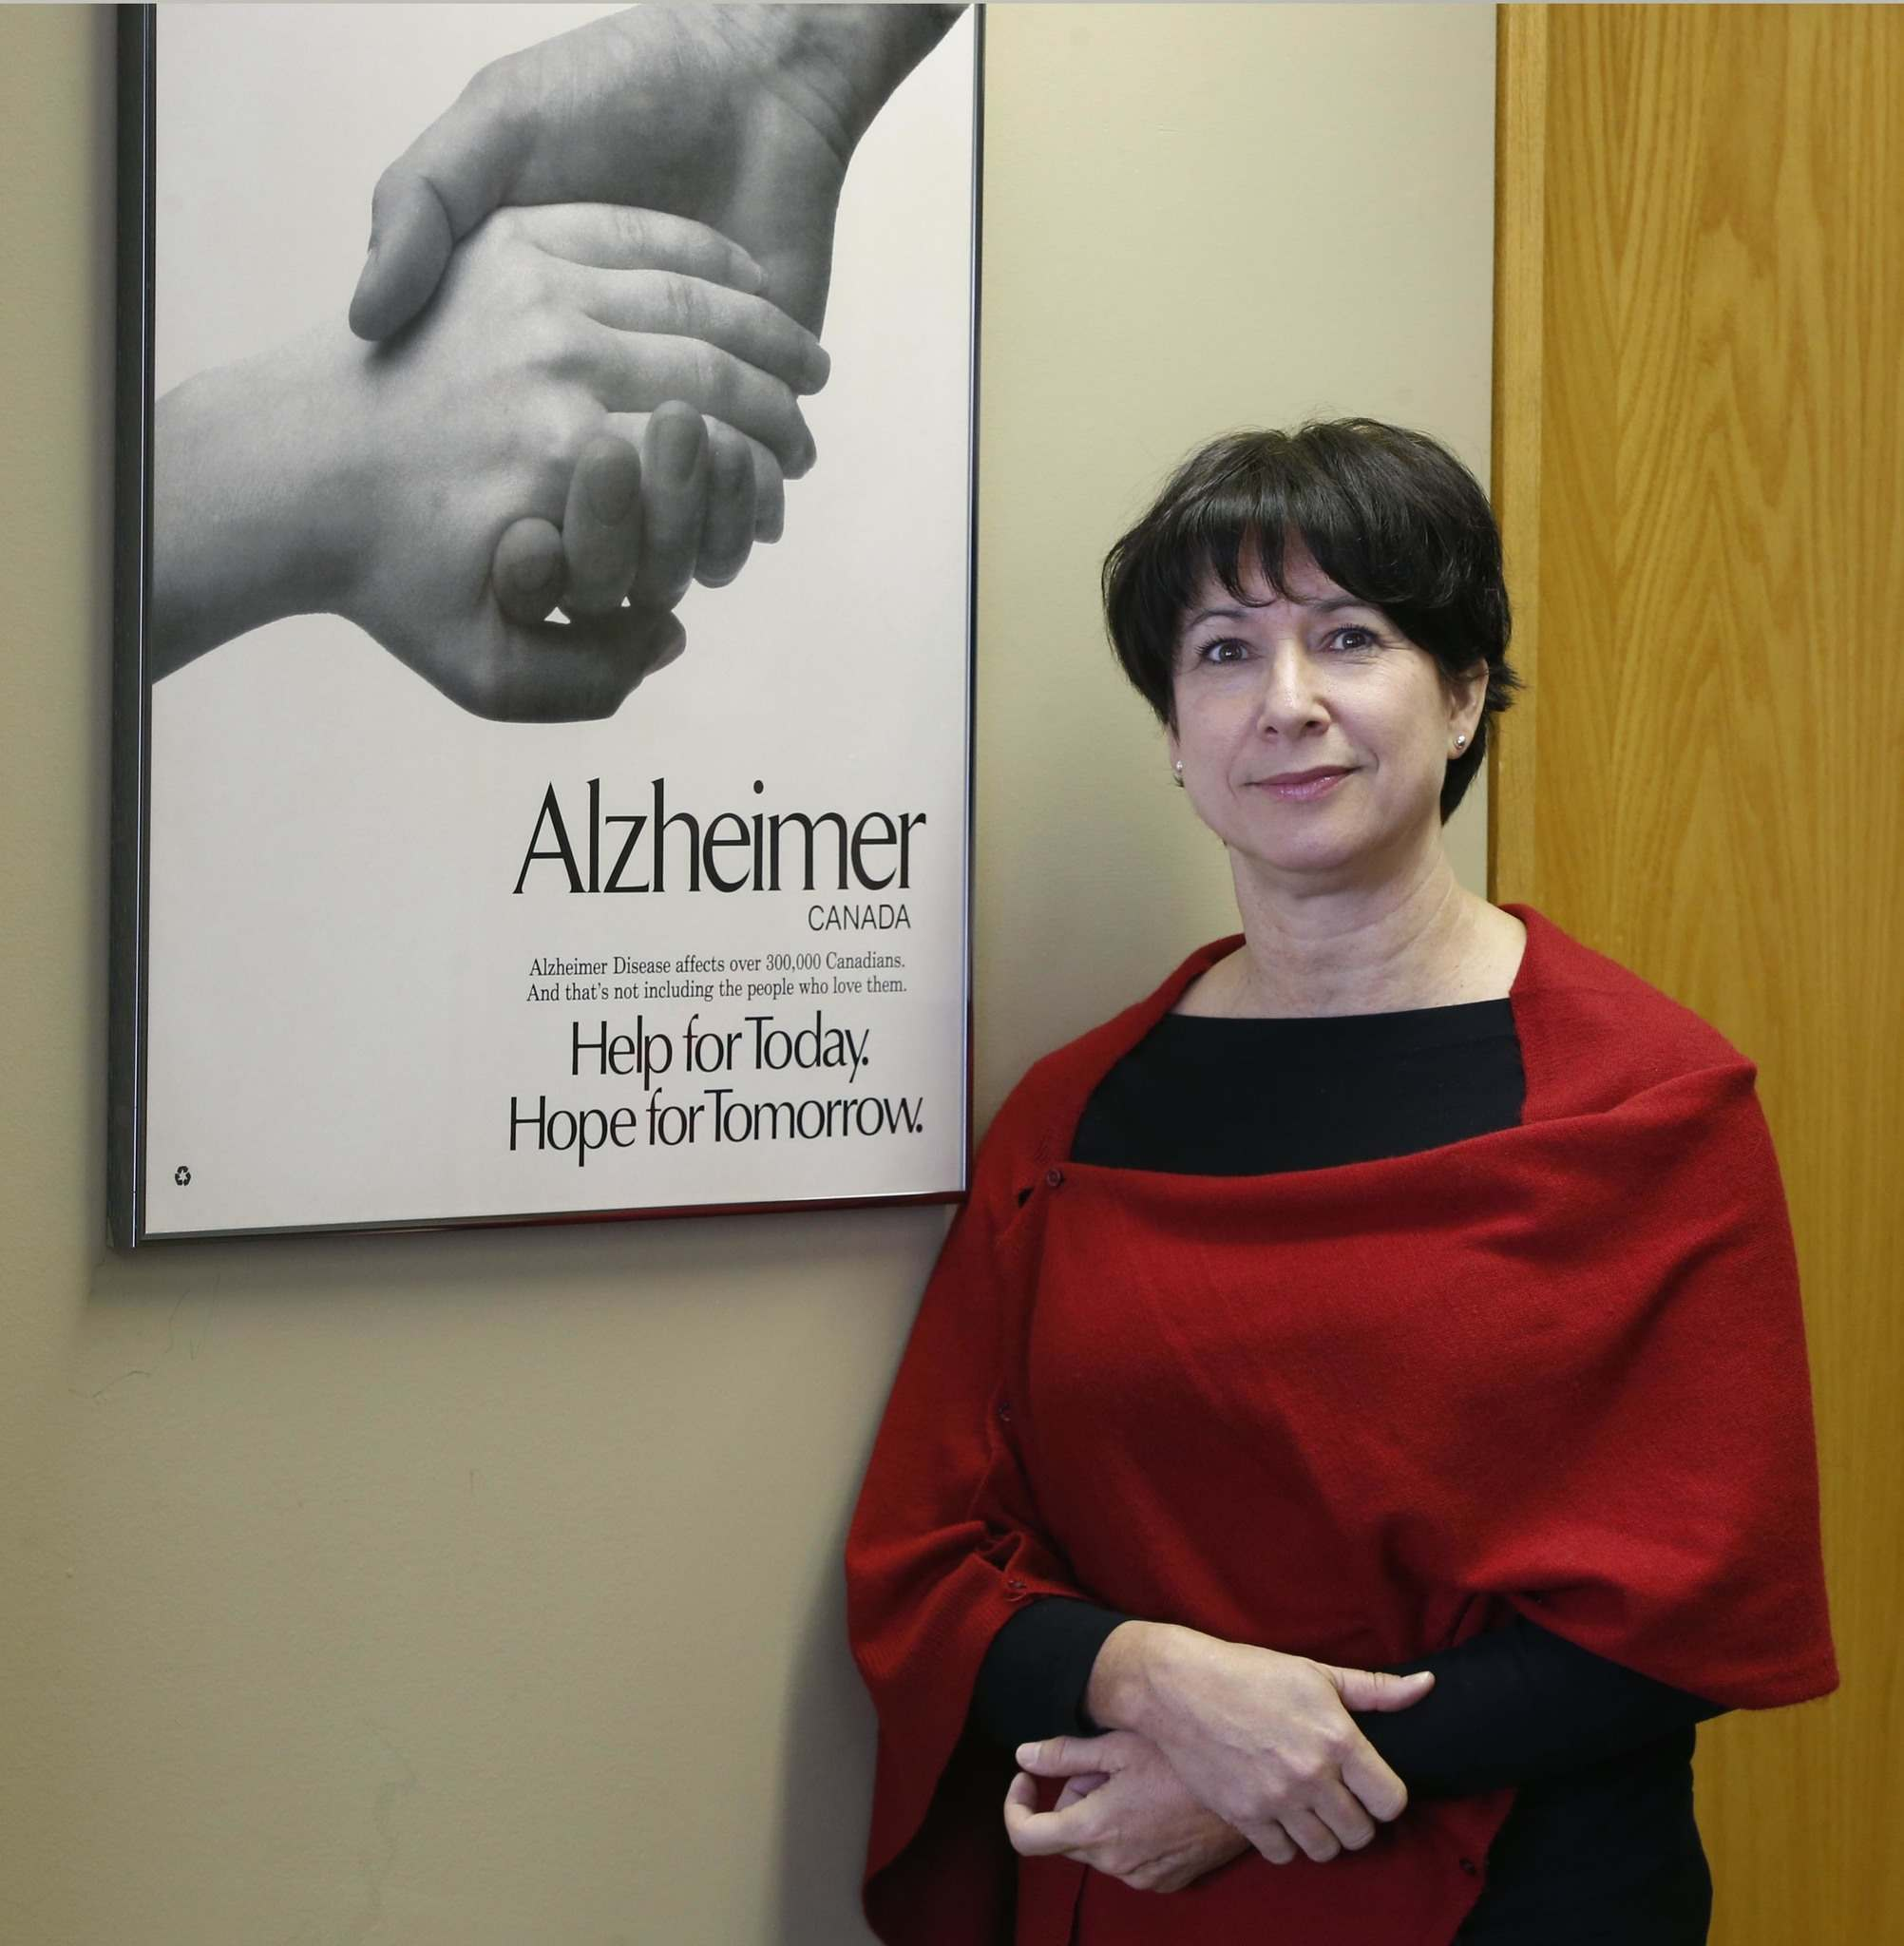 """""""Most people understand the need for safety, the need for caution, particularly, again, with this vulnerable group. However, the fallout is really profound,"""" says Wendy Schettler, CEO for Alzheimer's Society of Manitoba. (Wayne Glowacki / Winnipeg Free Press files)</p>"""